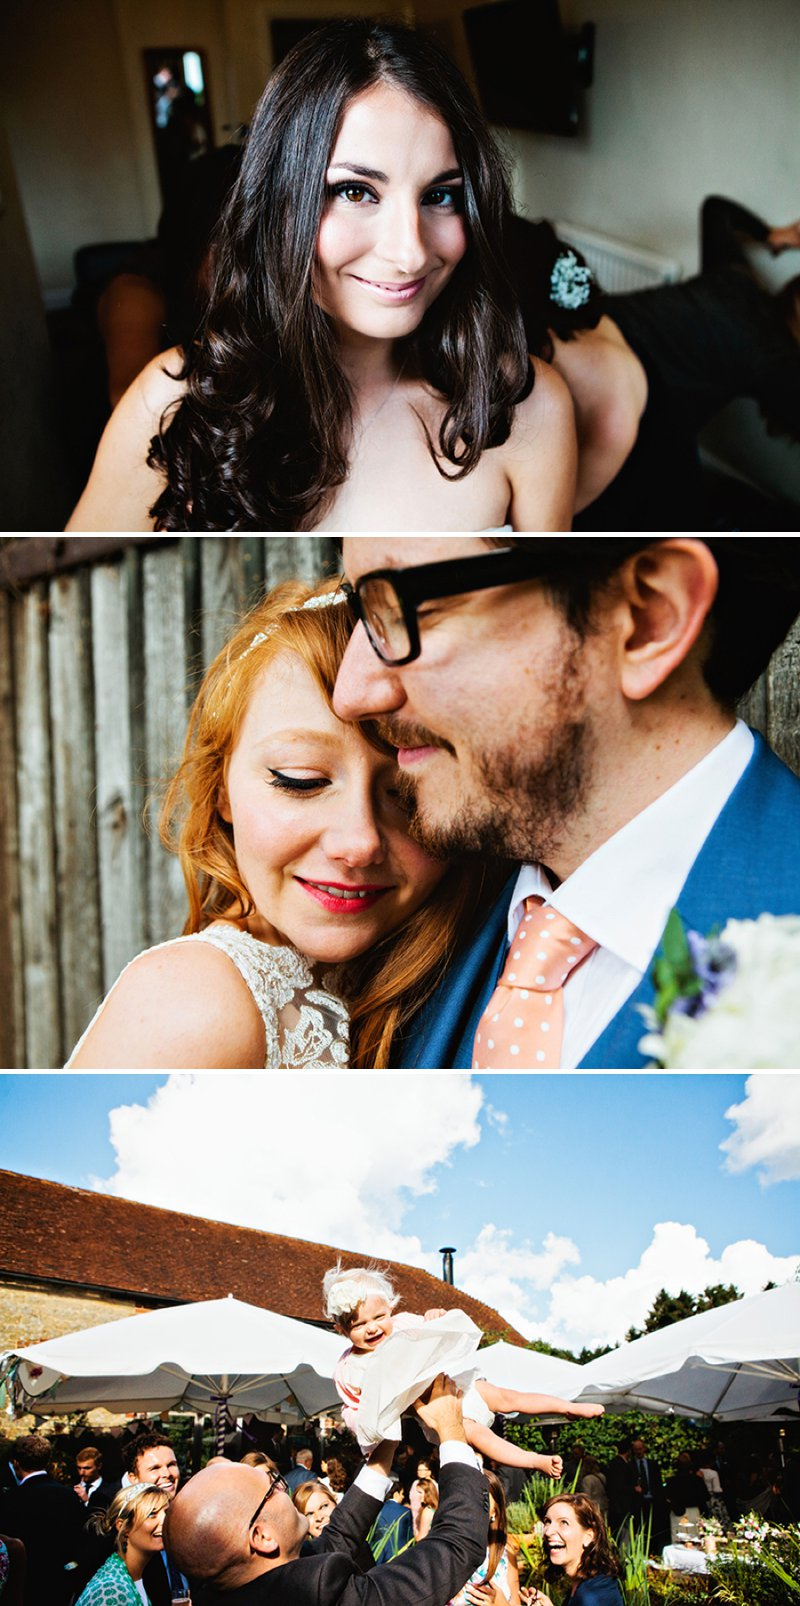 Andrew JR Squires Photography A Brighton Based Wedding Photographer Available For UK And European Weddings 3 Recommended   Andrew JR Squires Photography.